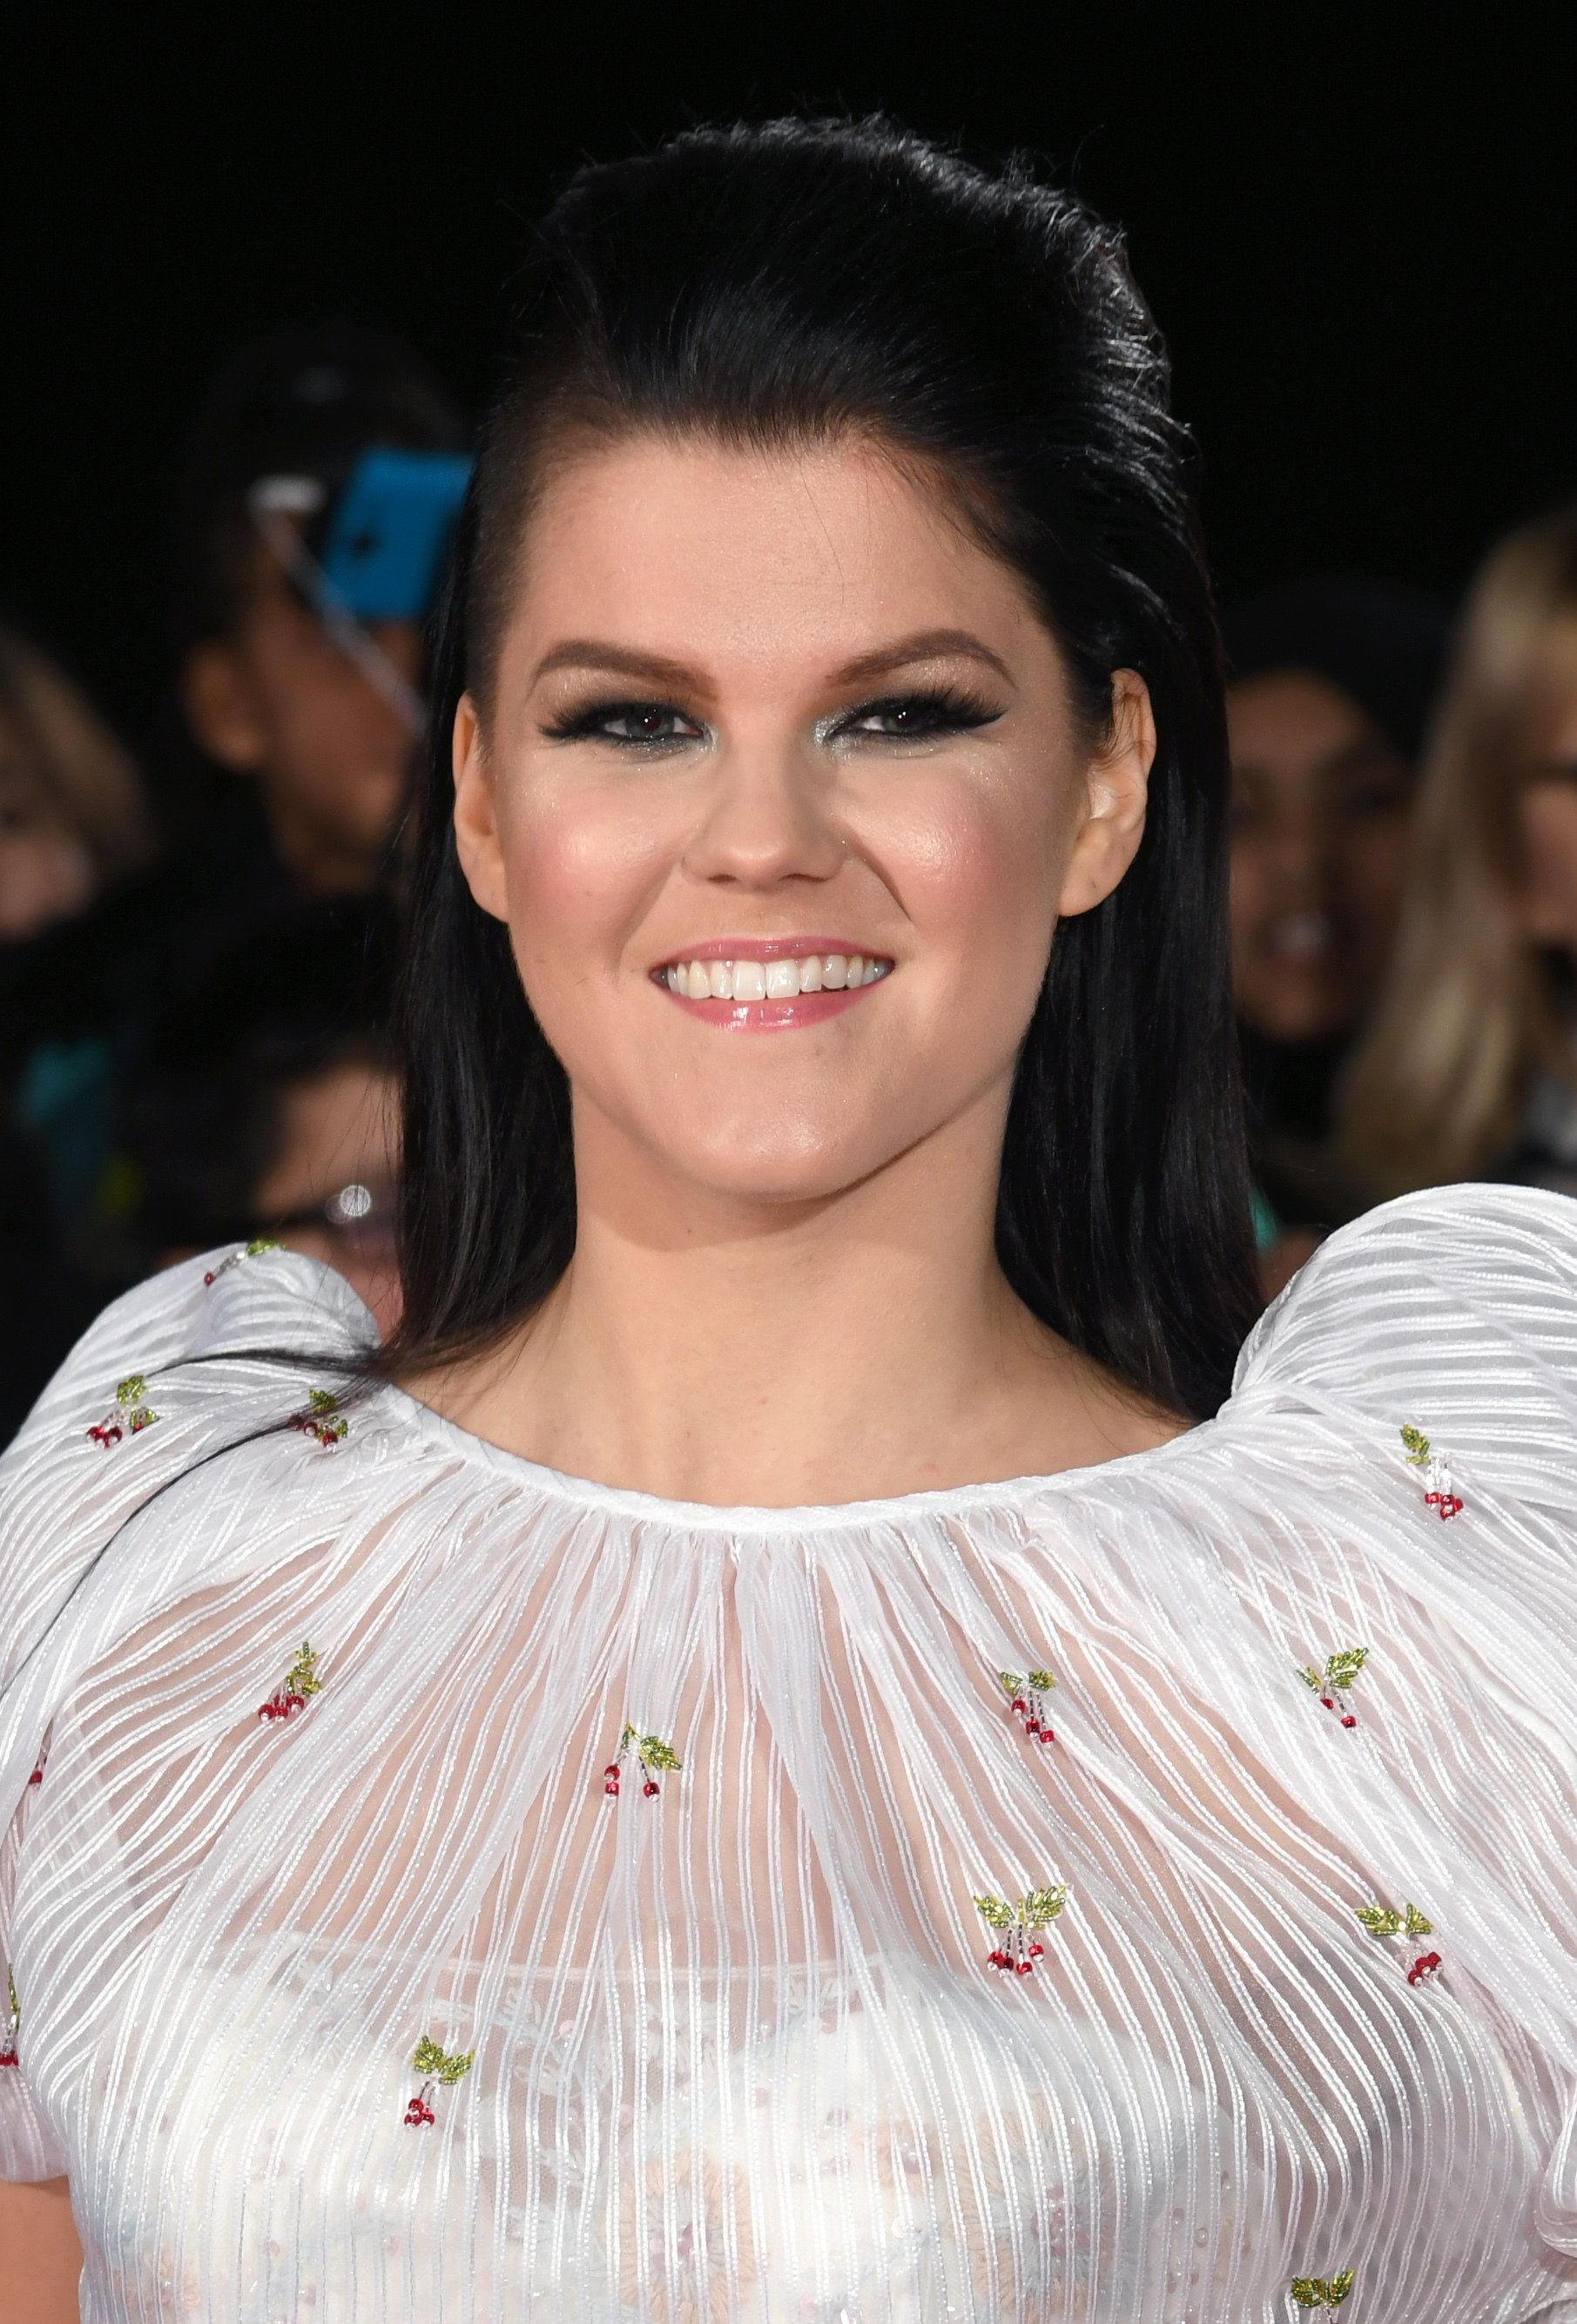 X Factor's Saara Aalto Could Be Heading For